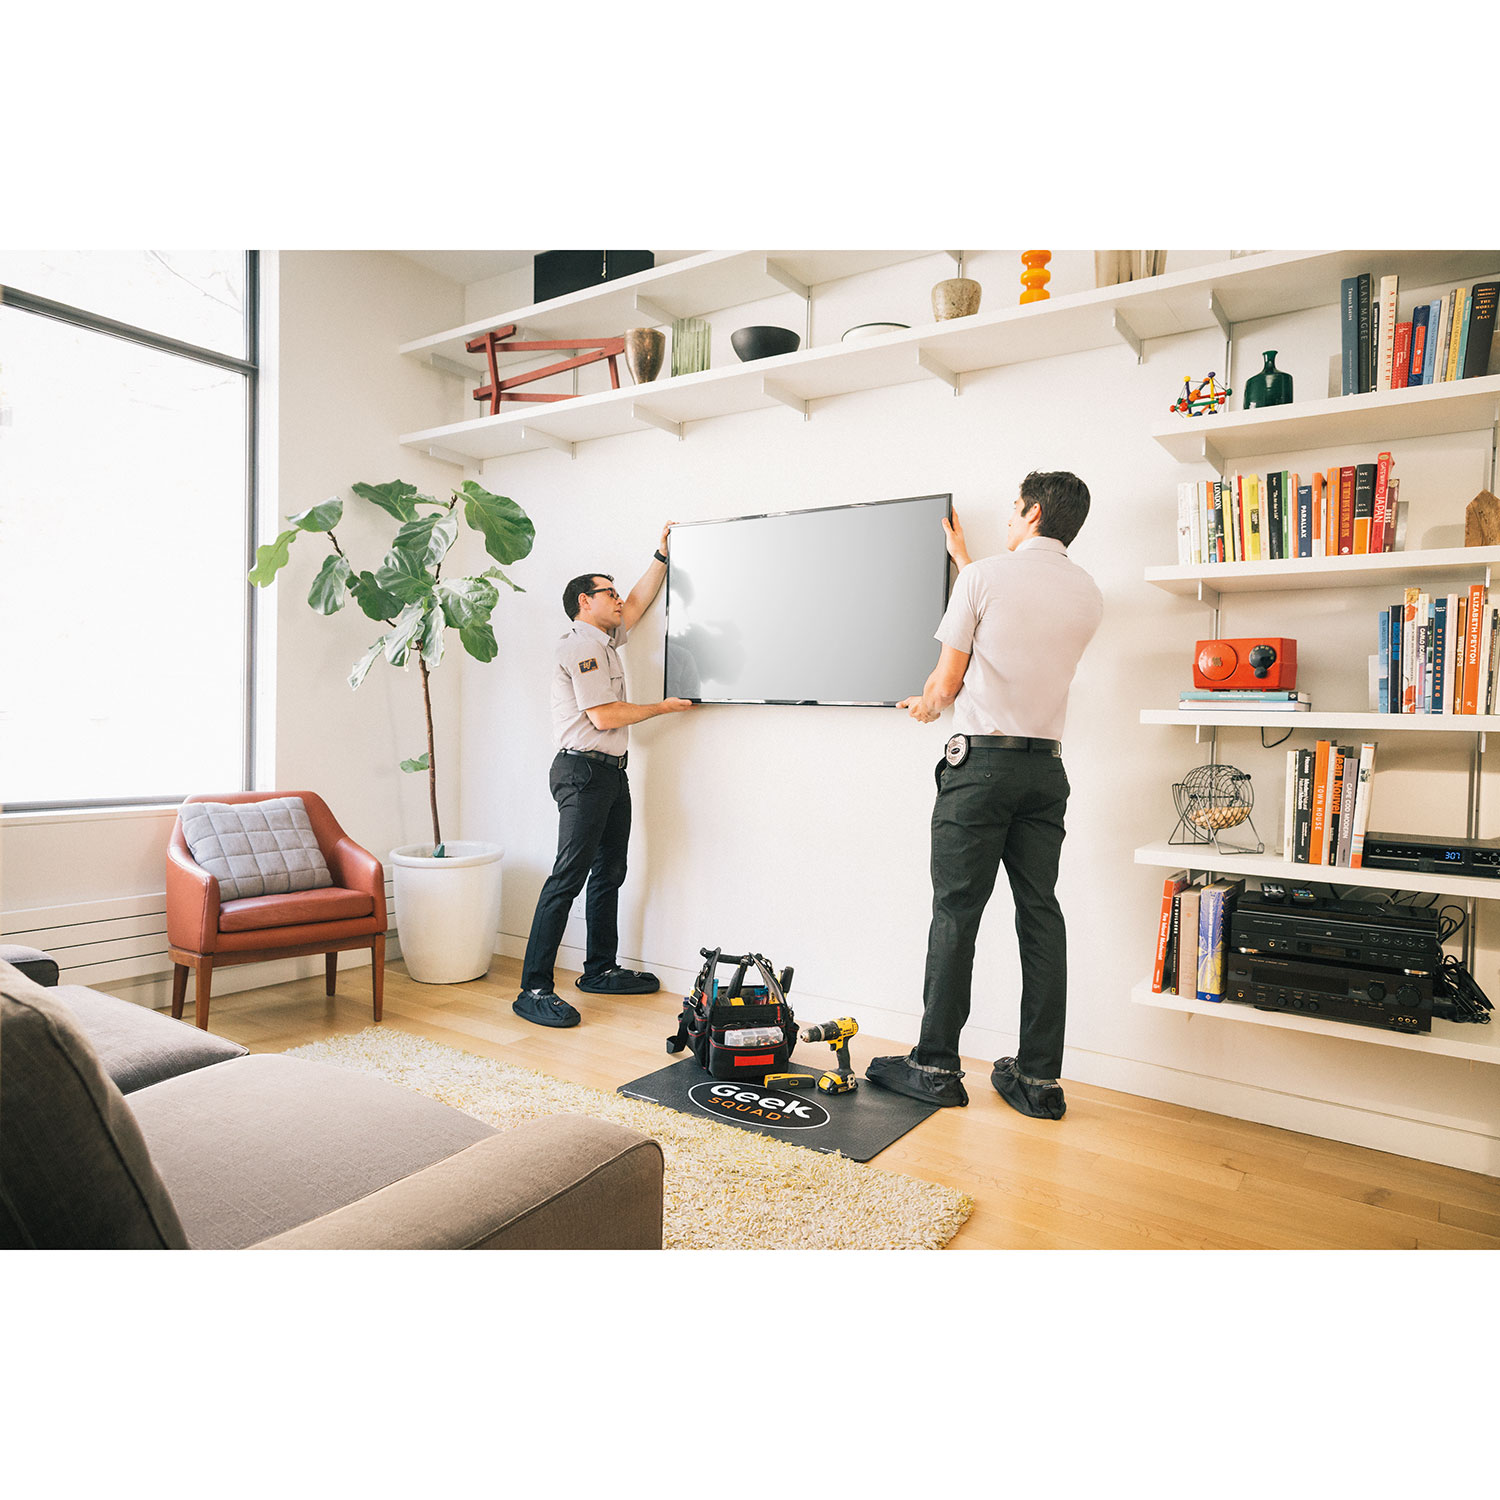 TV Mounting, Home Audio System Installation - Best Buy Canada